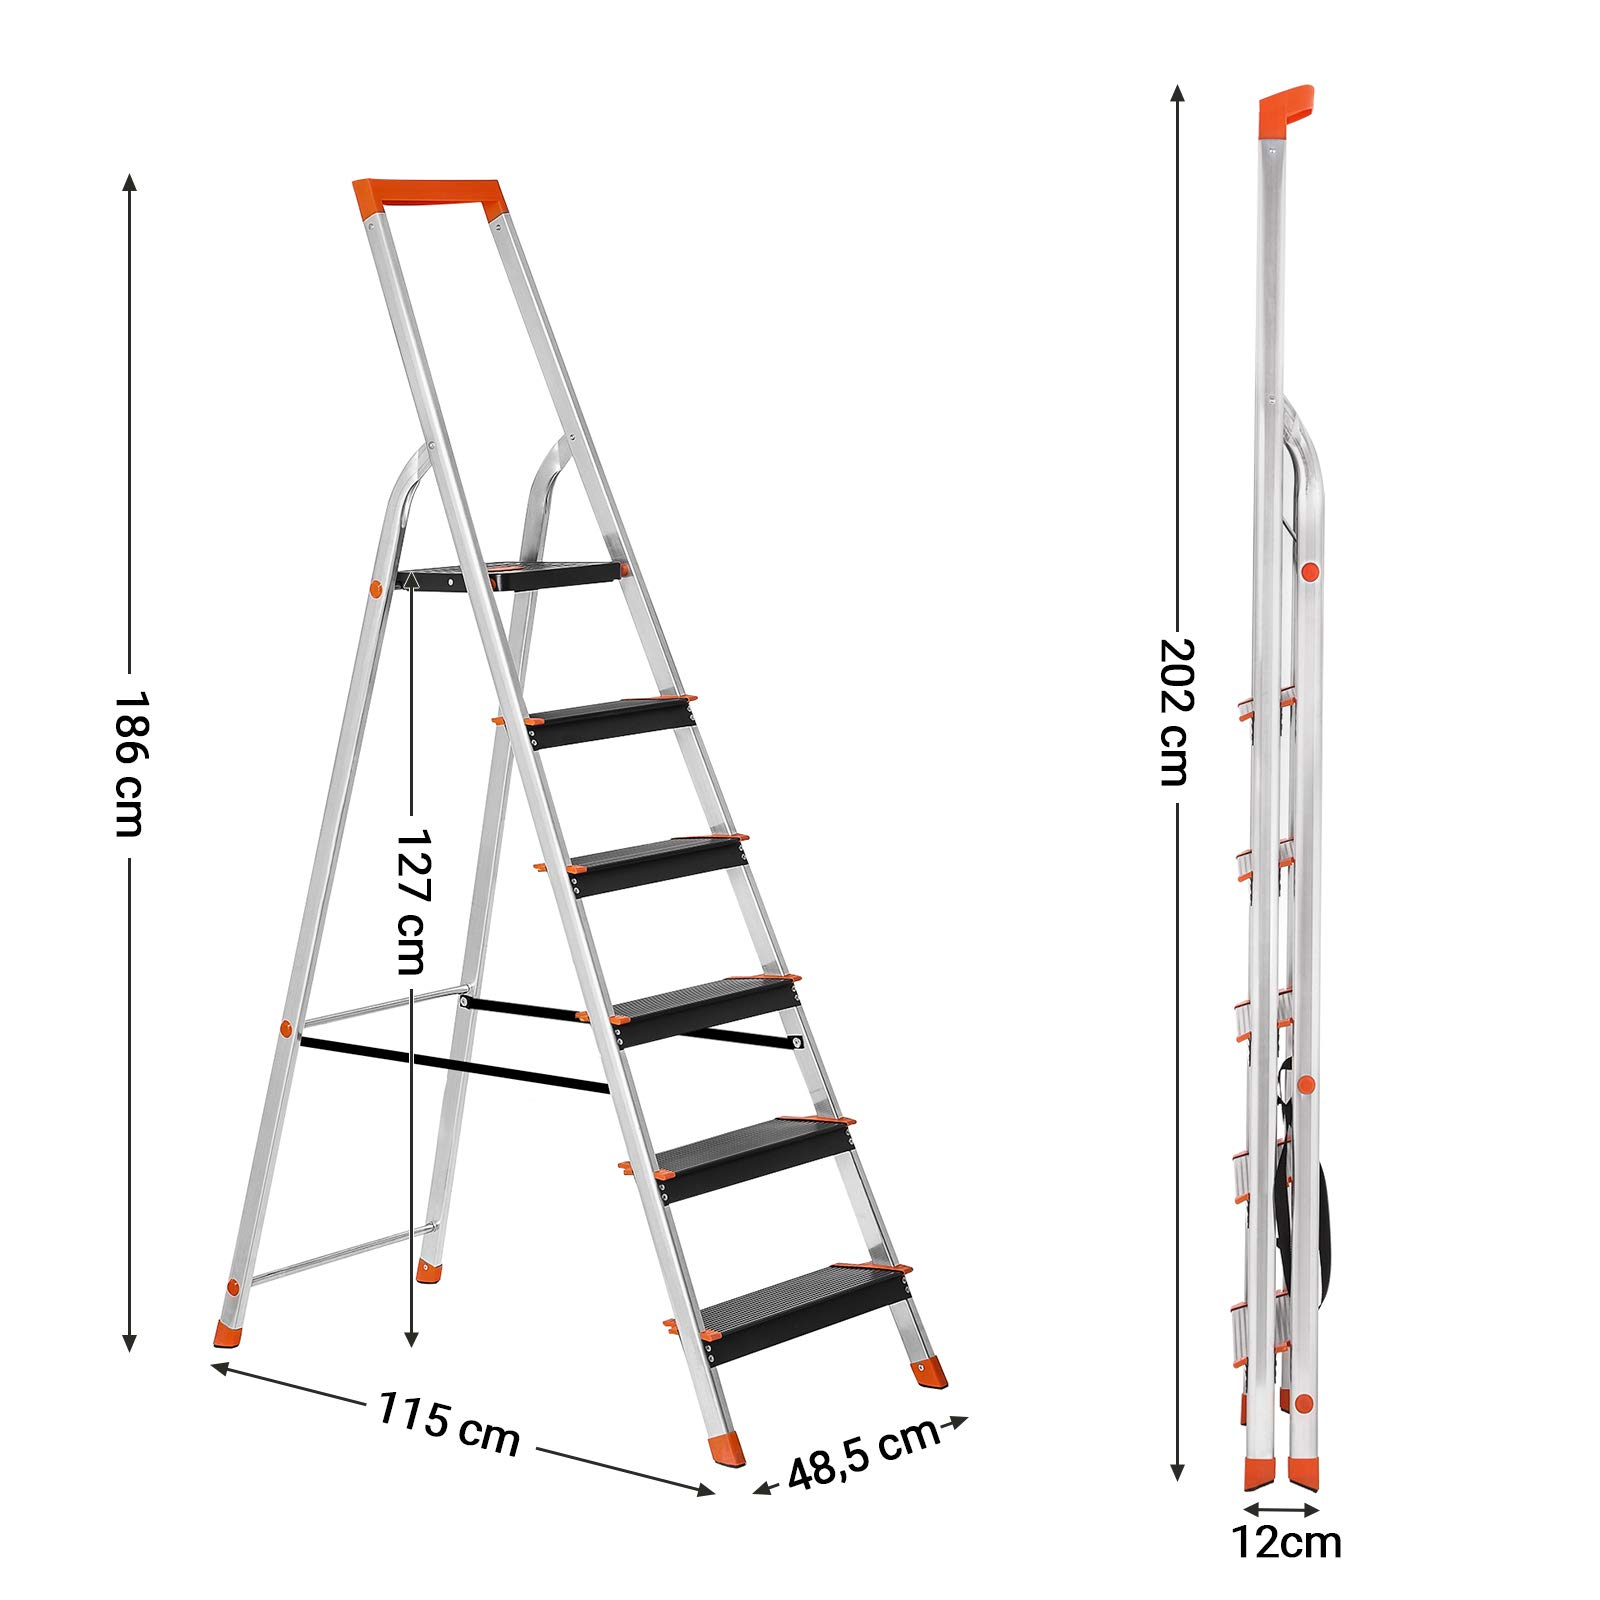 Songmics Step Ladder 6 Steps Aluminium Ladder With 12 Cm Wide Steps Folding Ladder With Tool Tray And Anti Slip Feet Buy Online In Faroe Islands At Desertcart Productid 141100998 Cm to feet and inches conversion in batch. desertcart